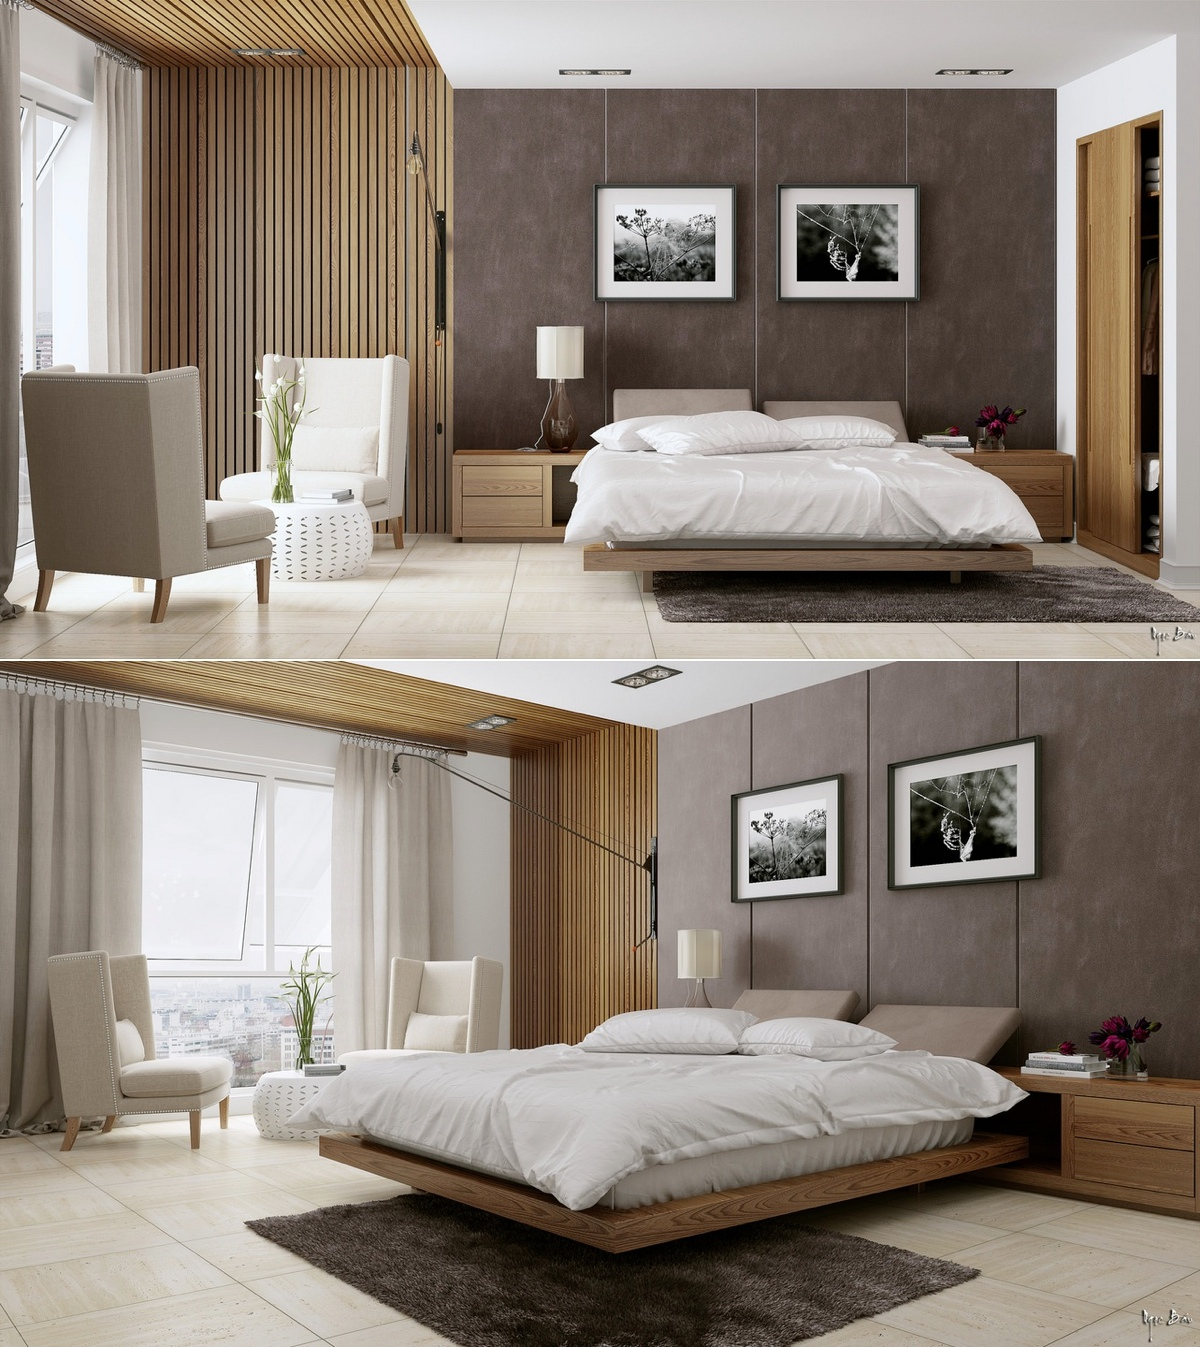 Romantic modern bedroom interior design ideas for New style bedroom bed design